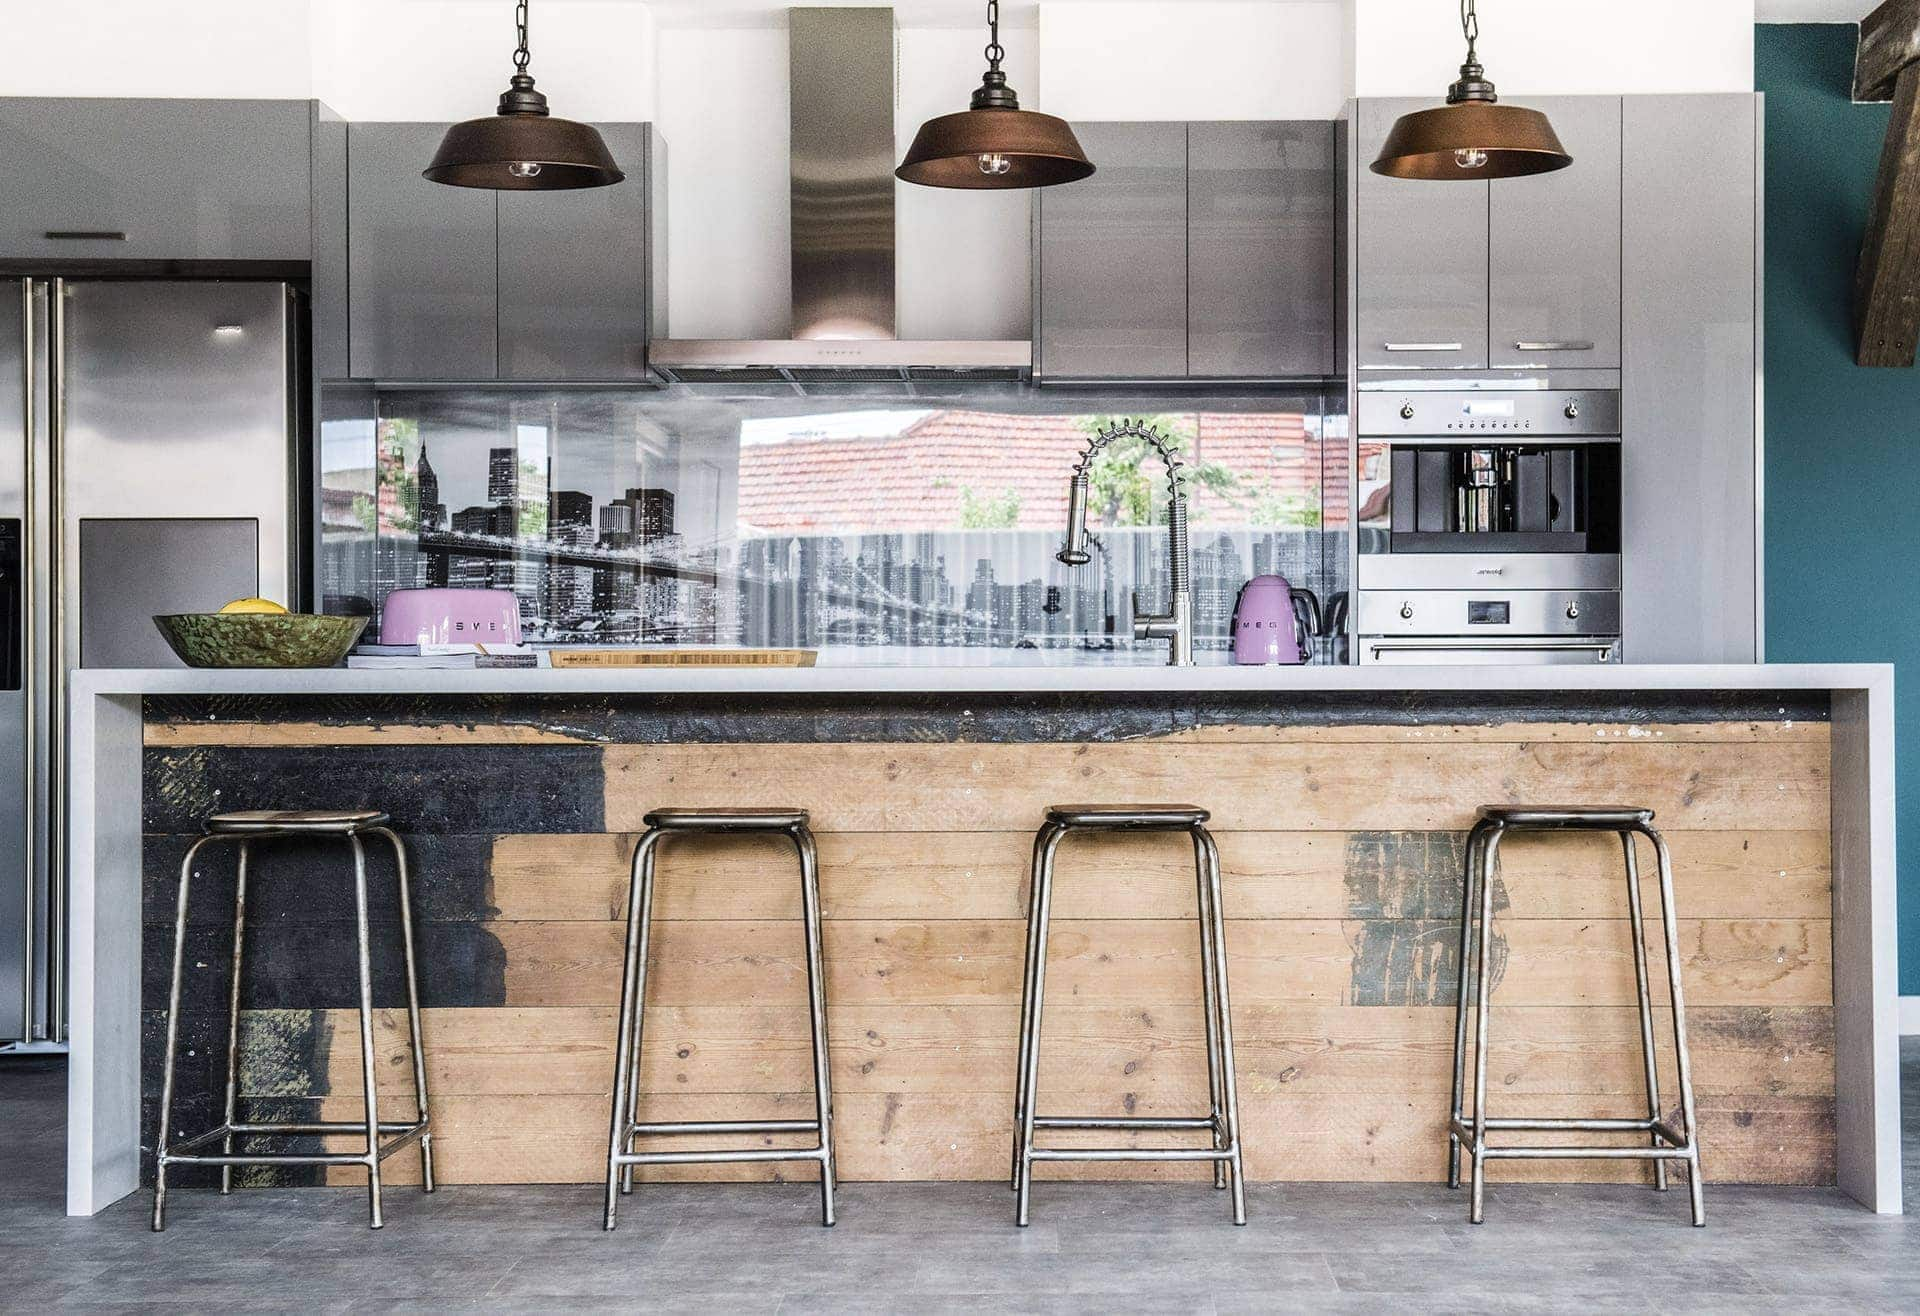 House Rules 2018 Jess and Jared kitchen with industrial pendants over bench